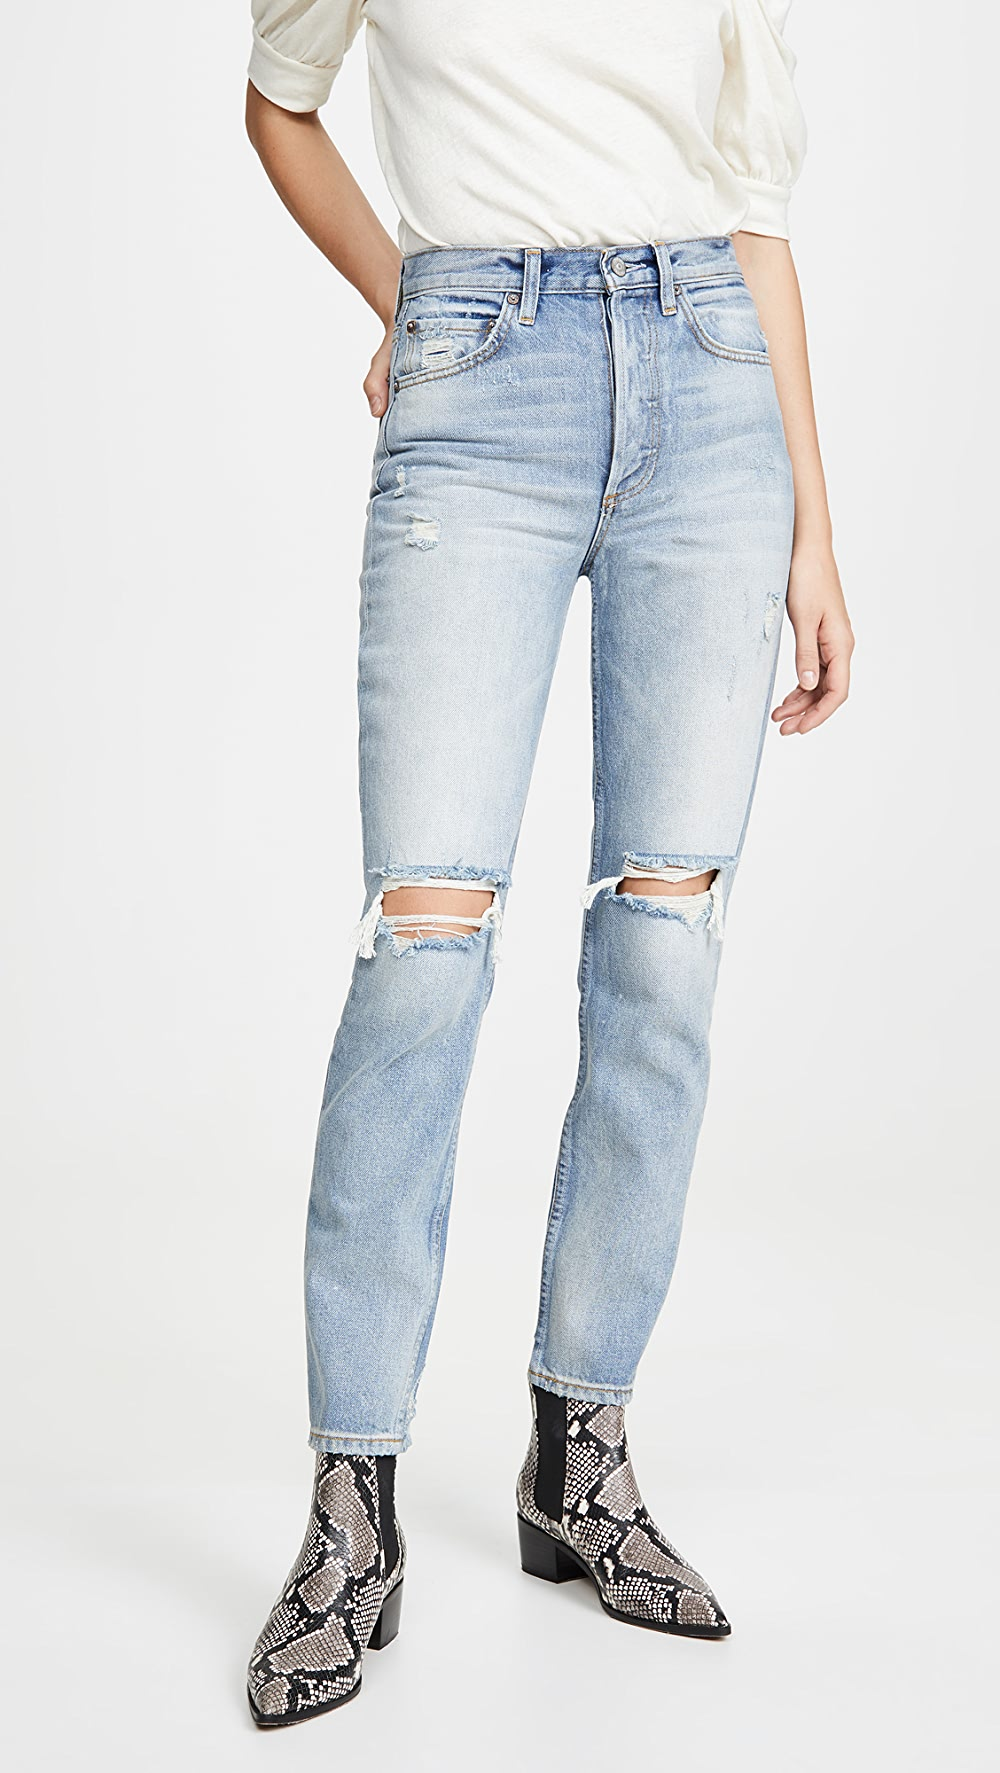 Symbol Of The Brand Boyish - The Billy High-rise Rigid Skinny Jeans Excellent (In) Quality